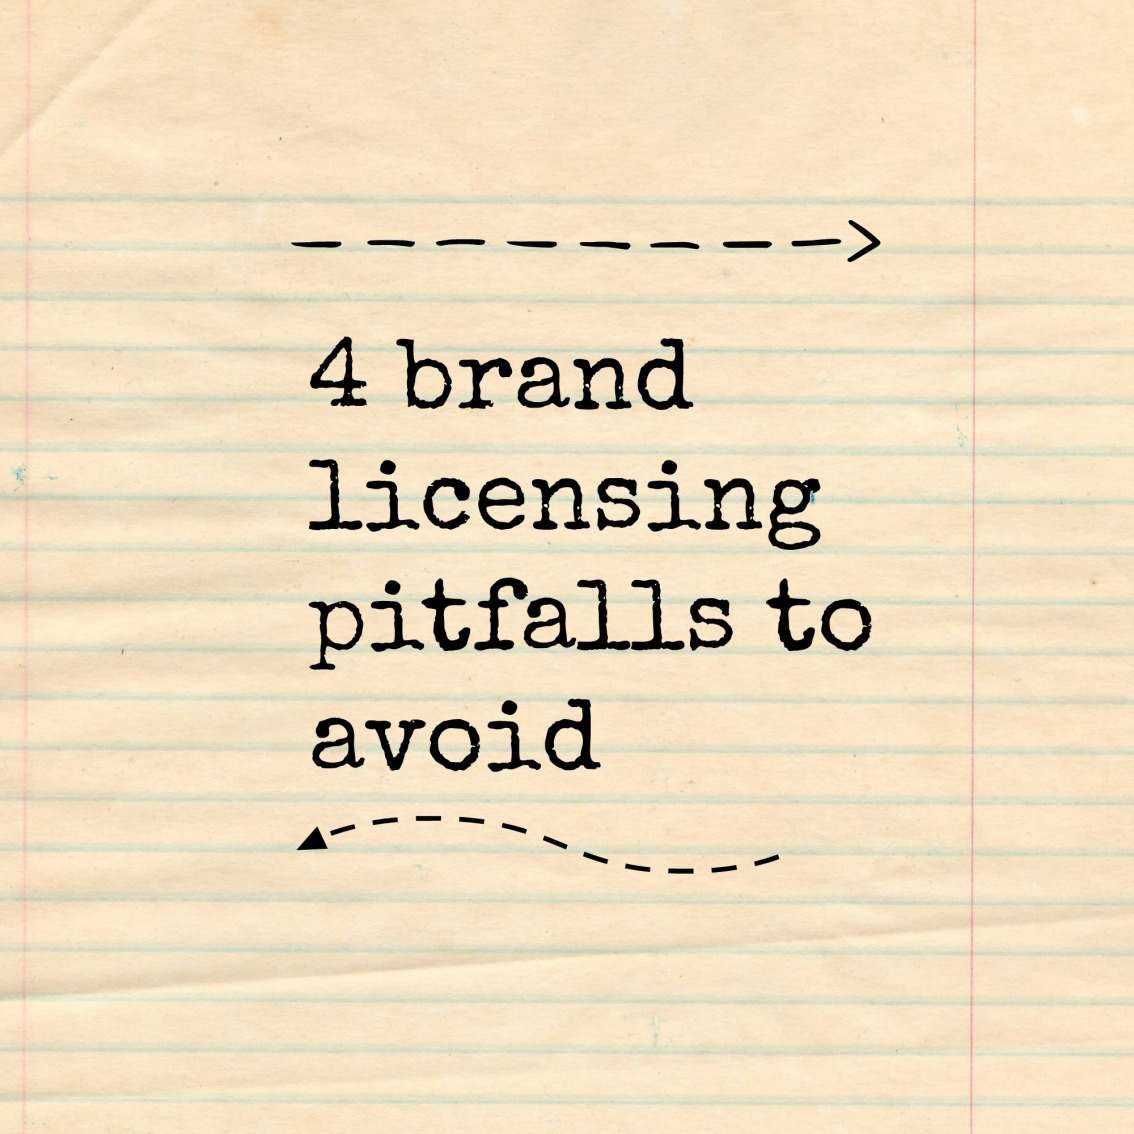 4 brand licensing pitfalls to avoid